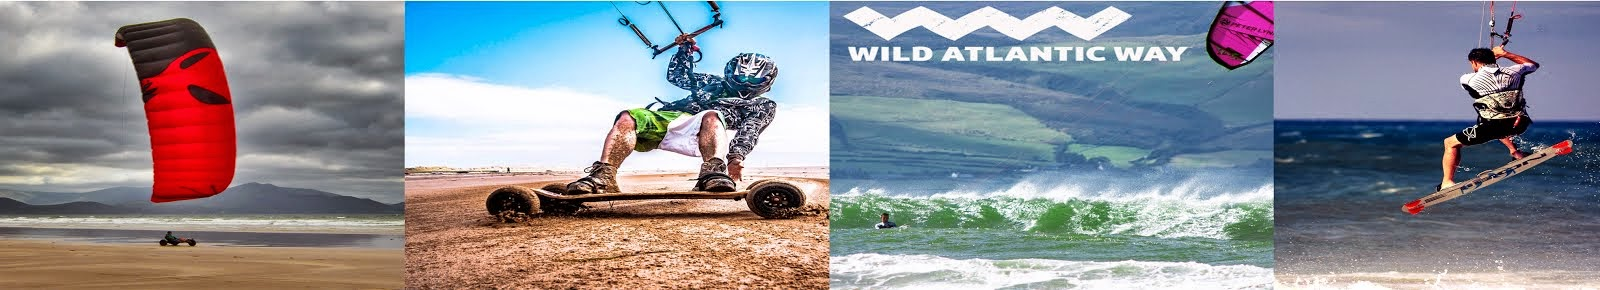 Kite-Way.com -> Your Way to Kitesurfing